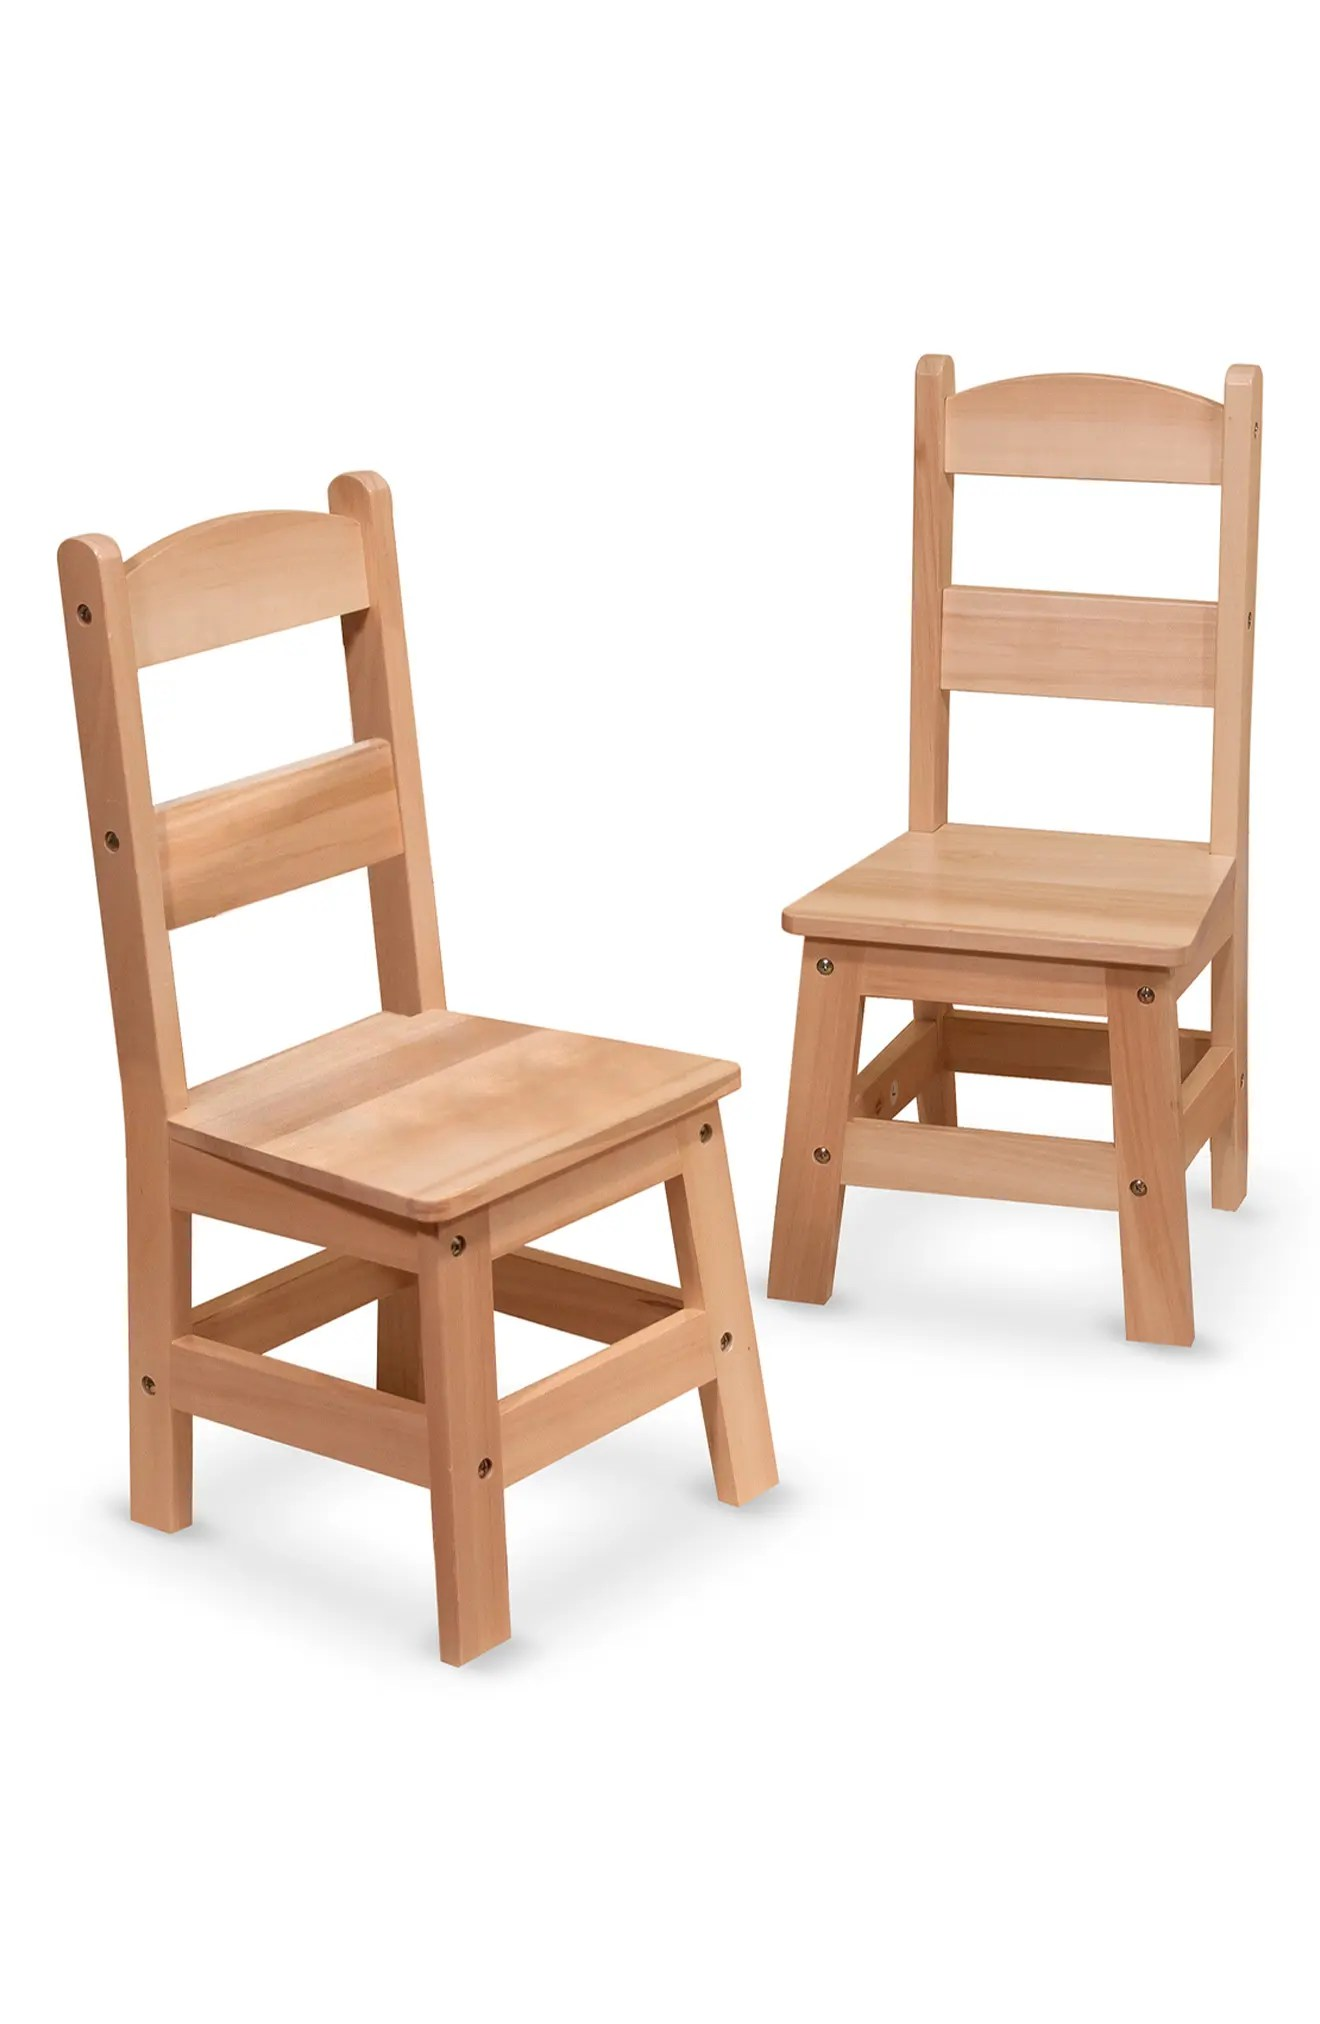 Toddler Wooden Chair Wooden Toys Toys